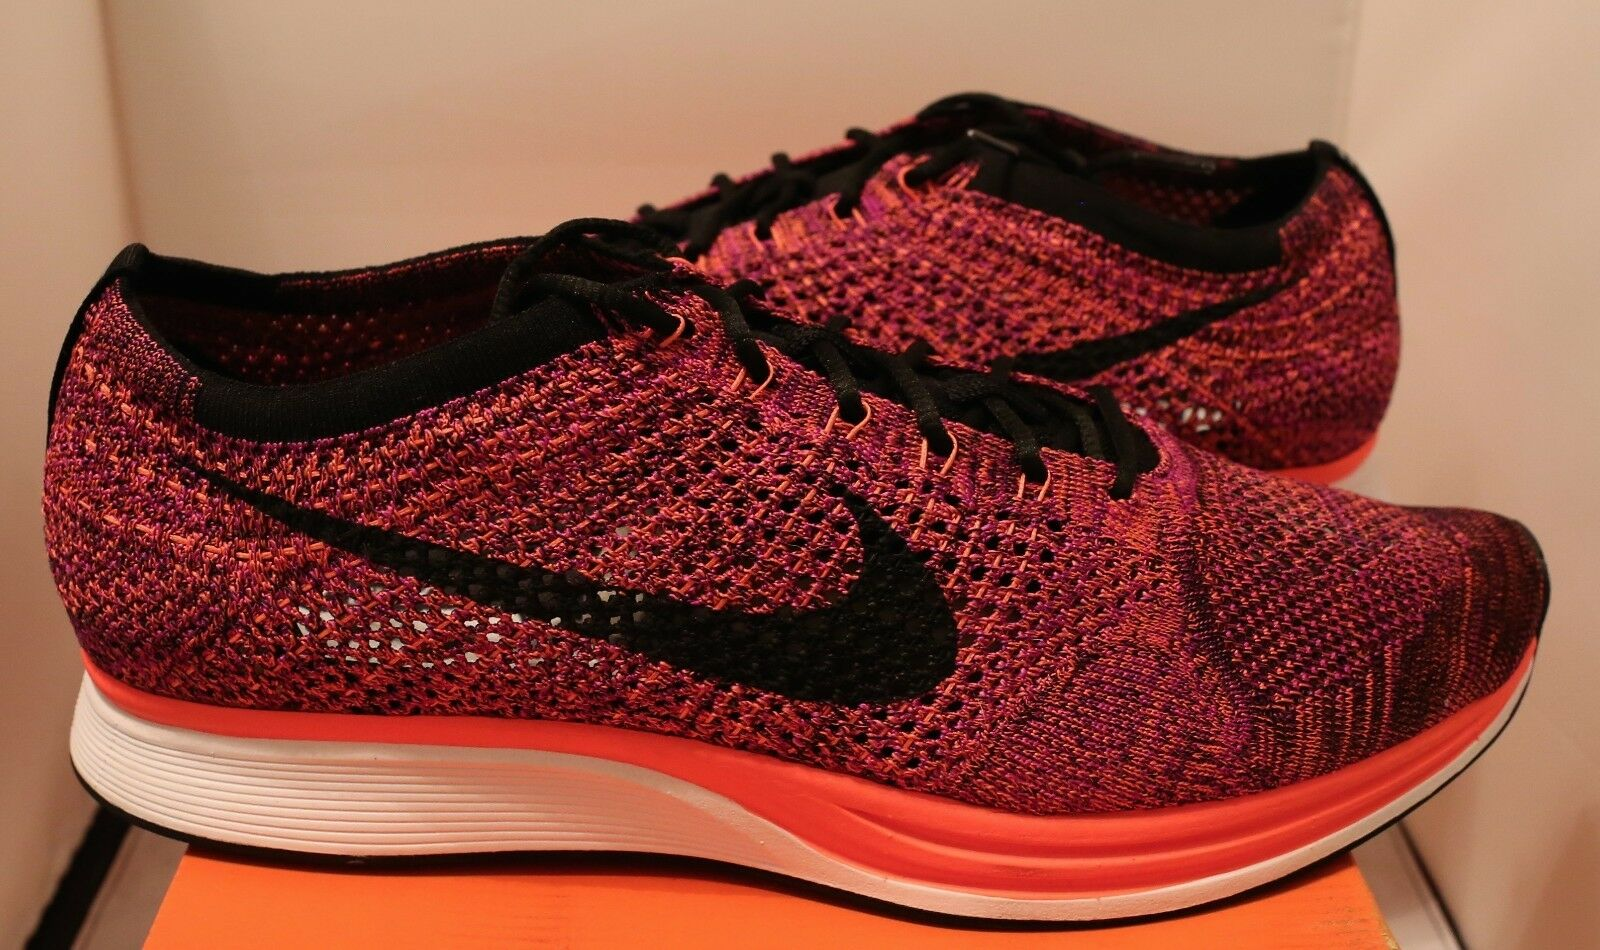 Nike Flyknit Racer Hyper orange Vivid Purple Acai Berry Sz 13 red pink